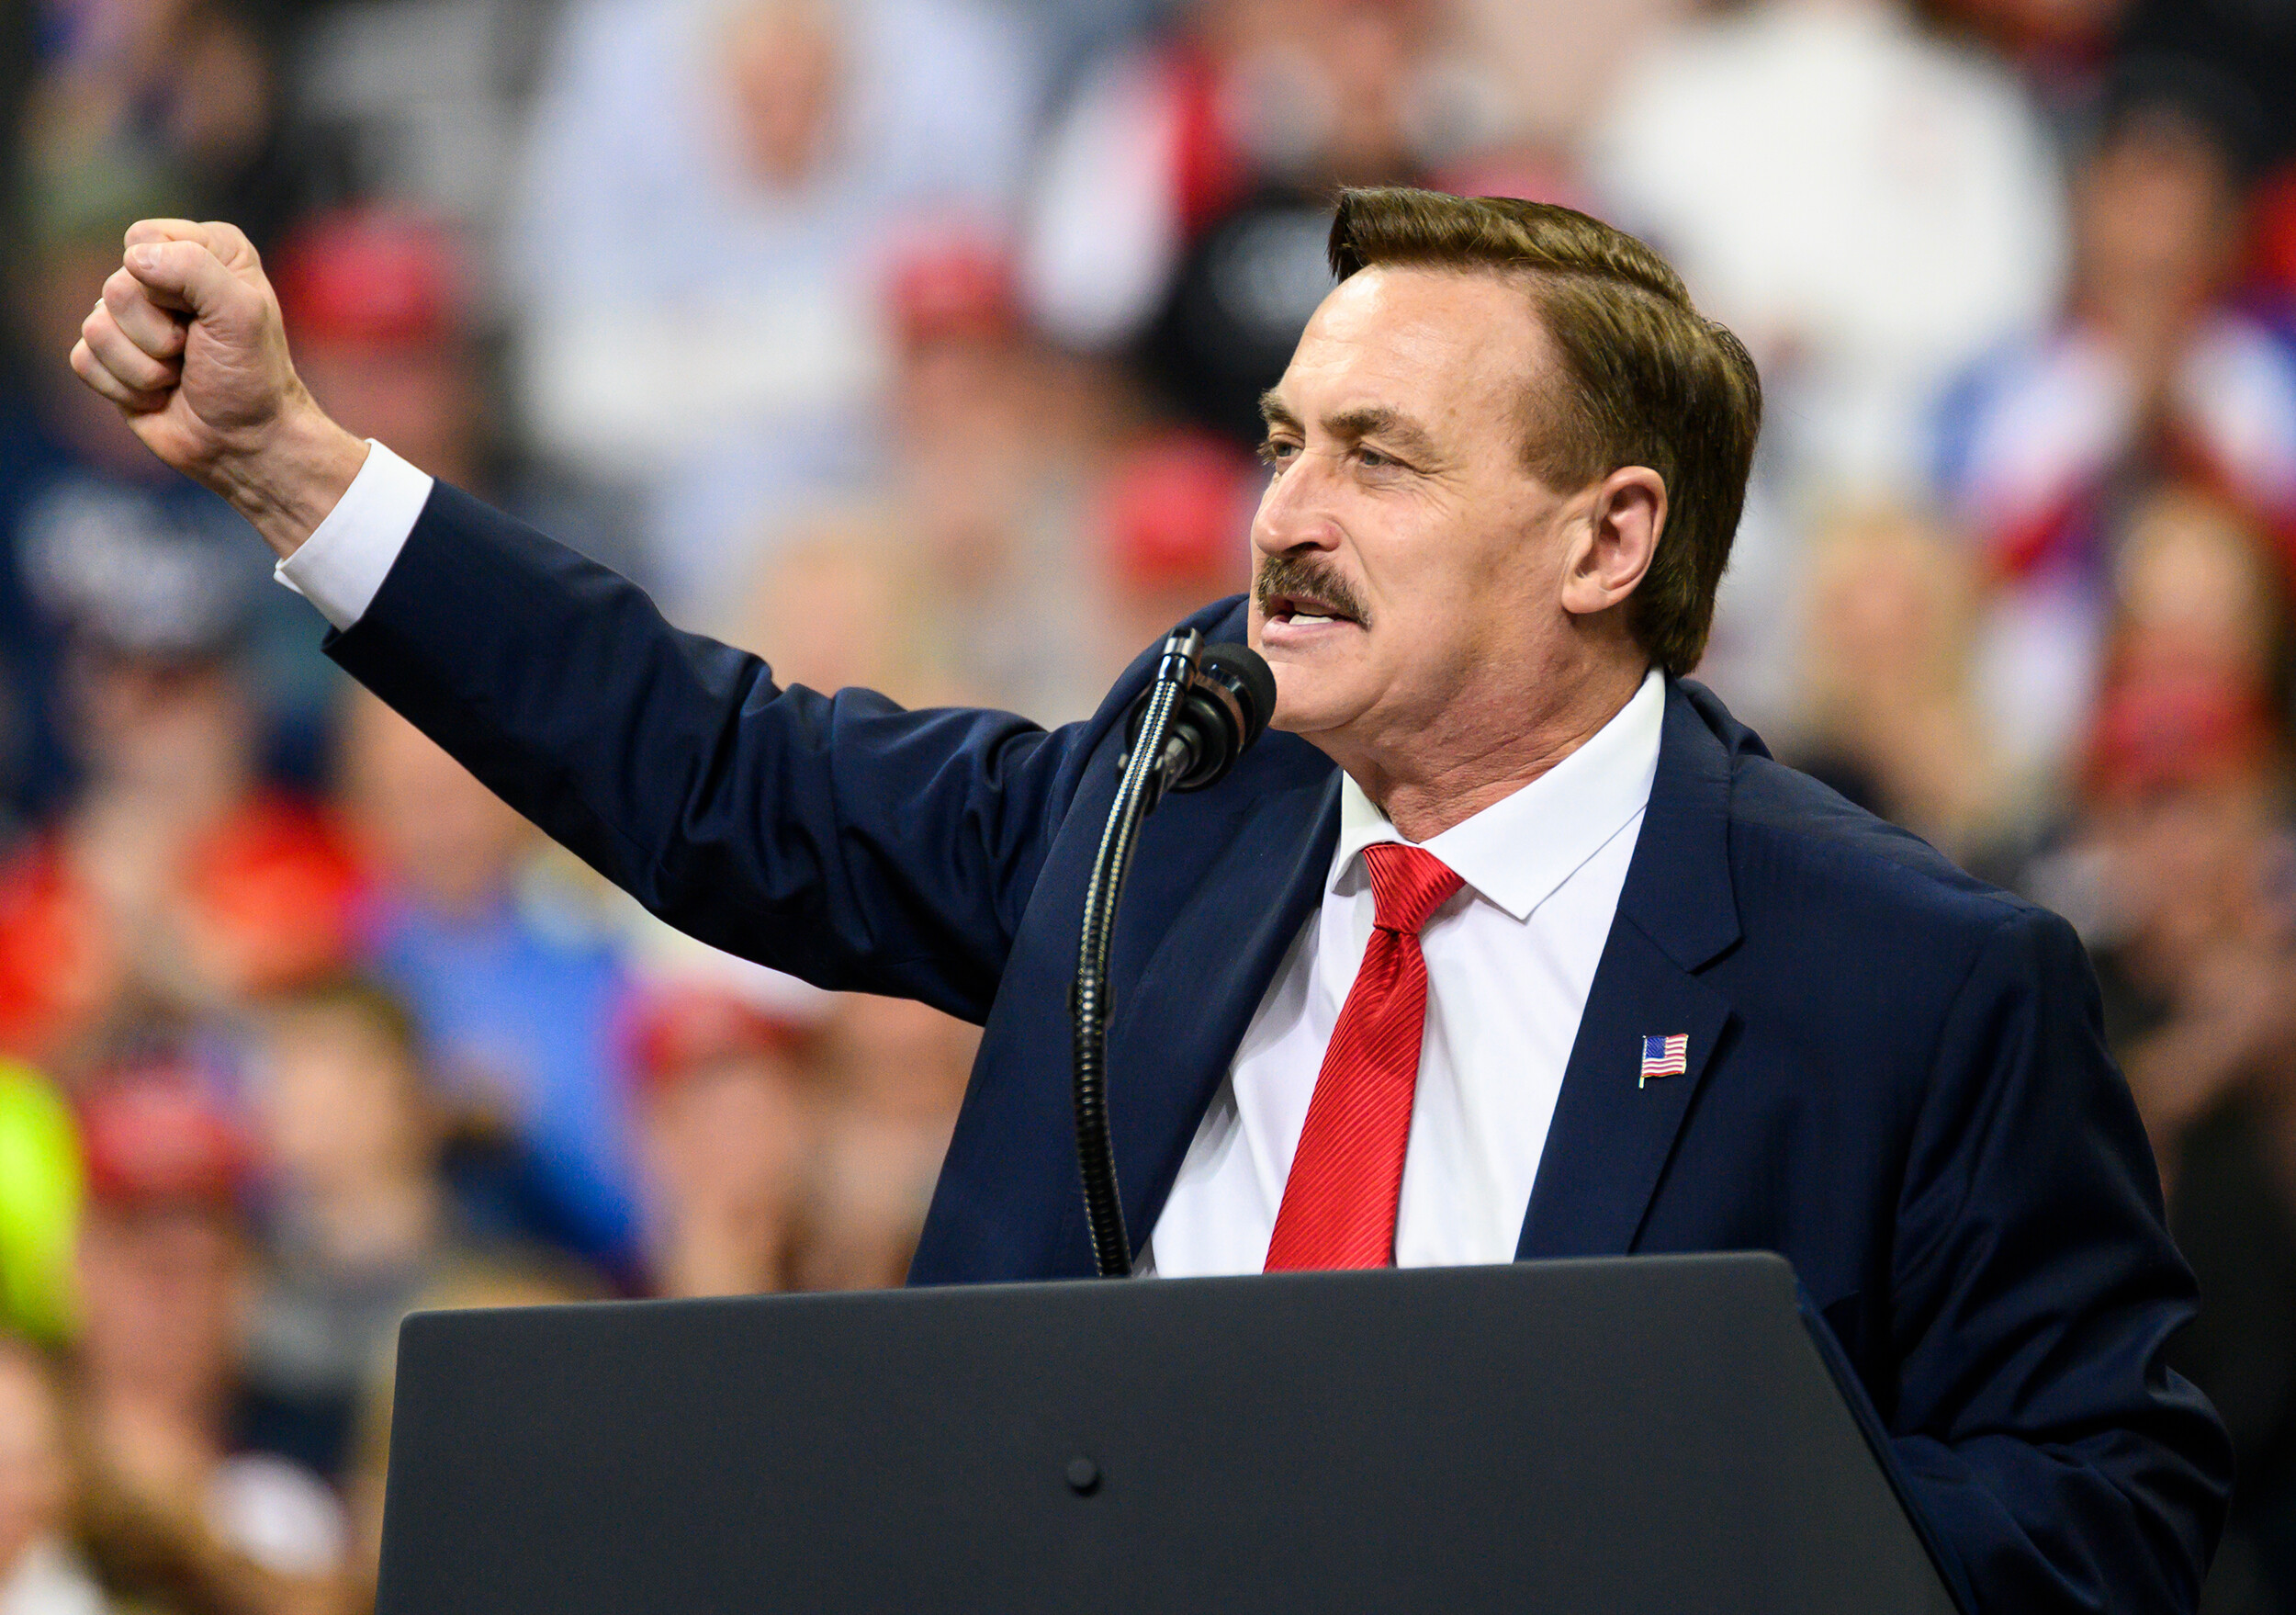 MyPillow magnate Mike Lindell's latest election conspiracy theory is his most bizarre yet